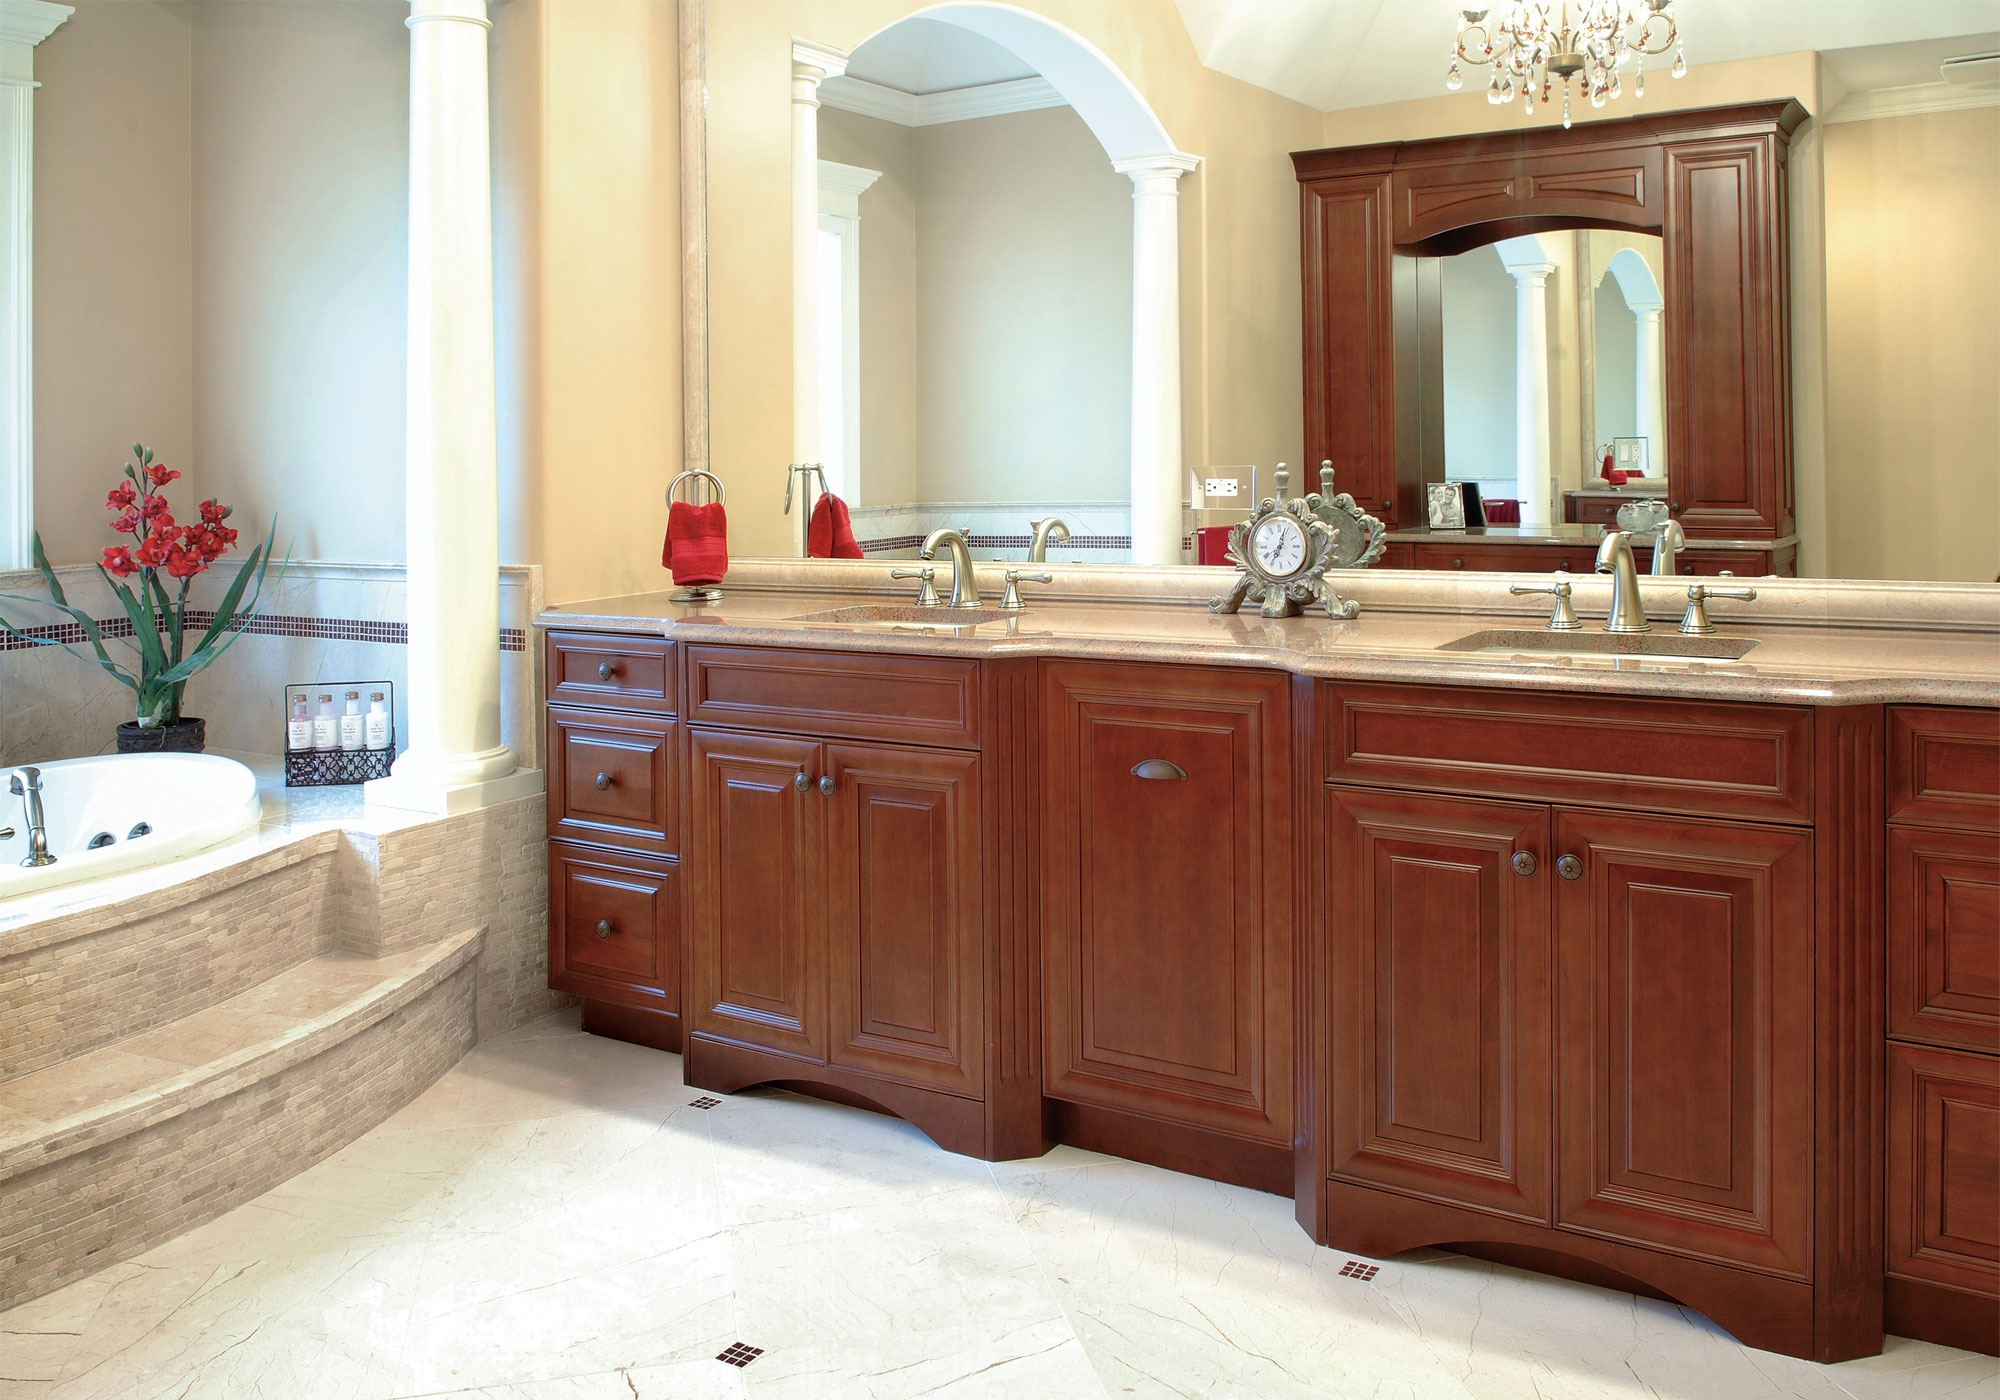 Kitchen Cabinets In The Bathroom